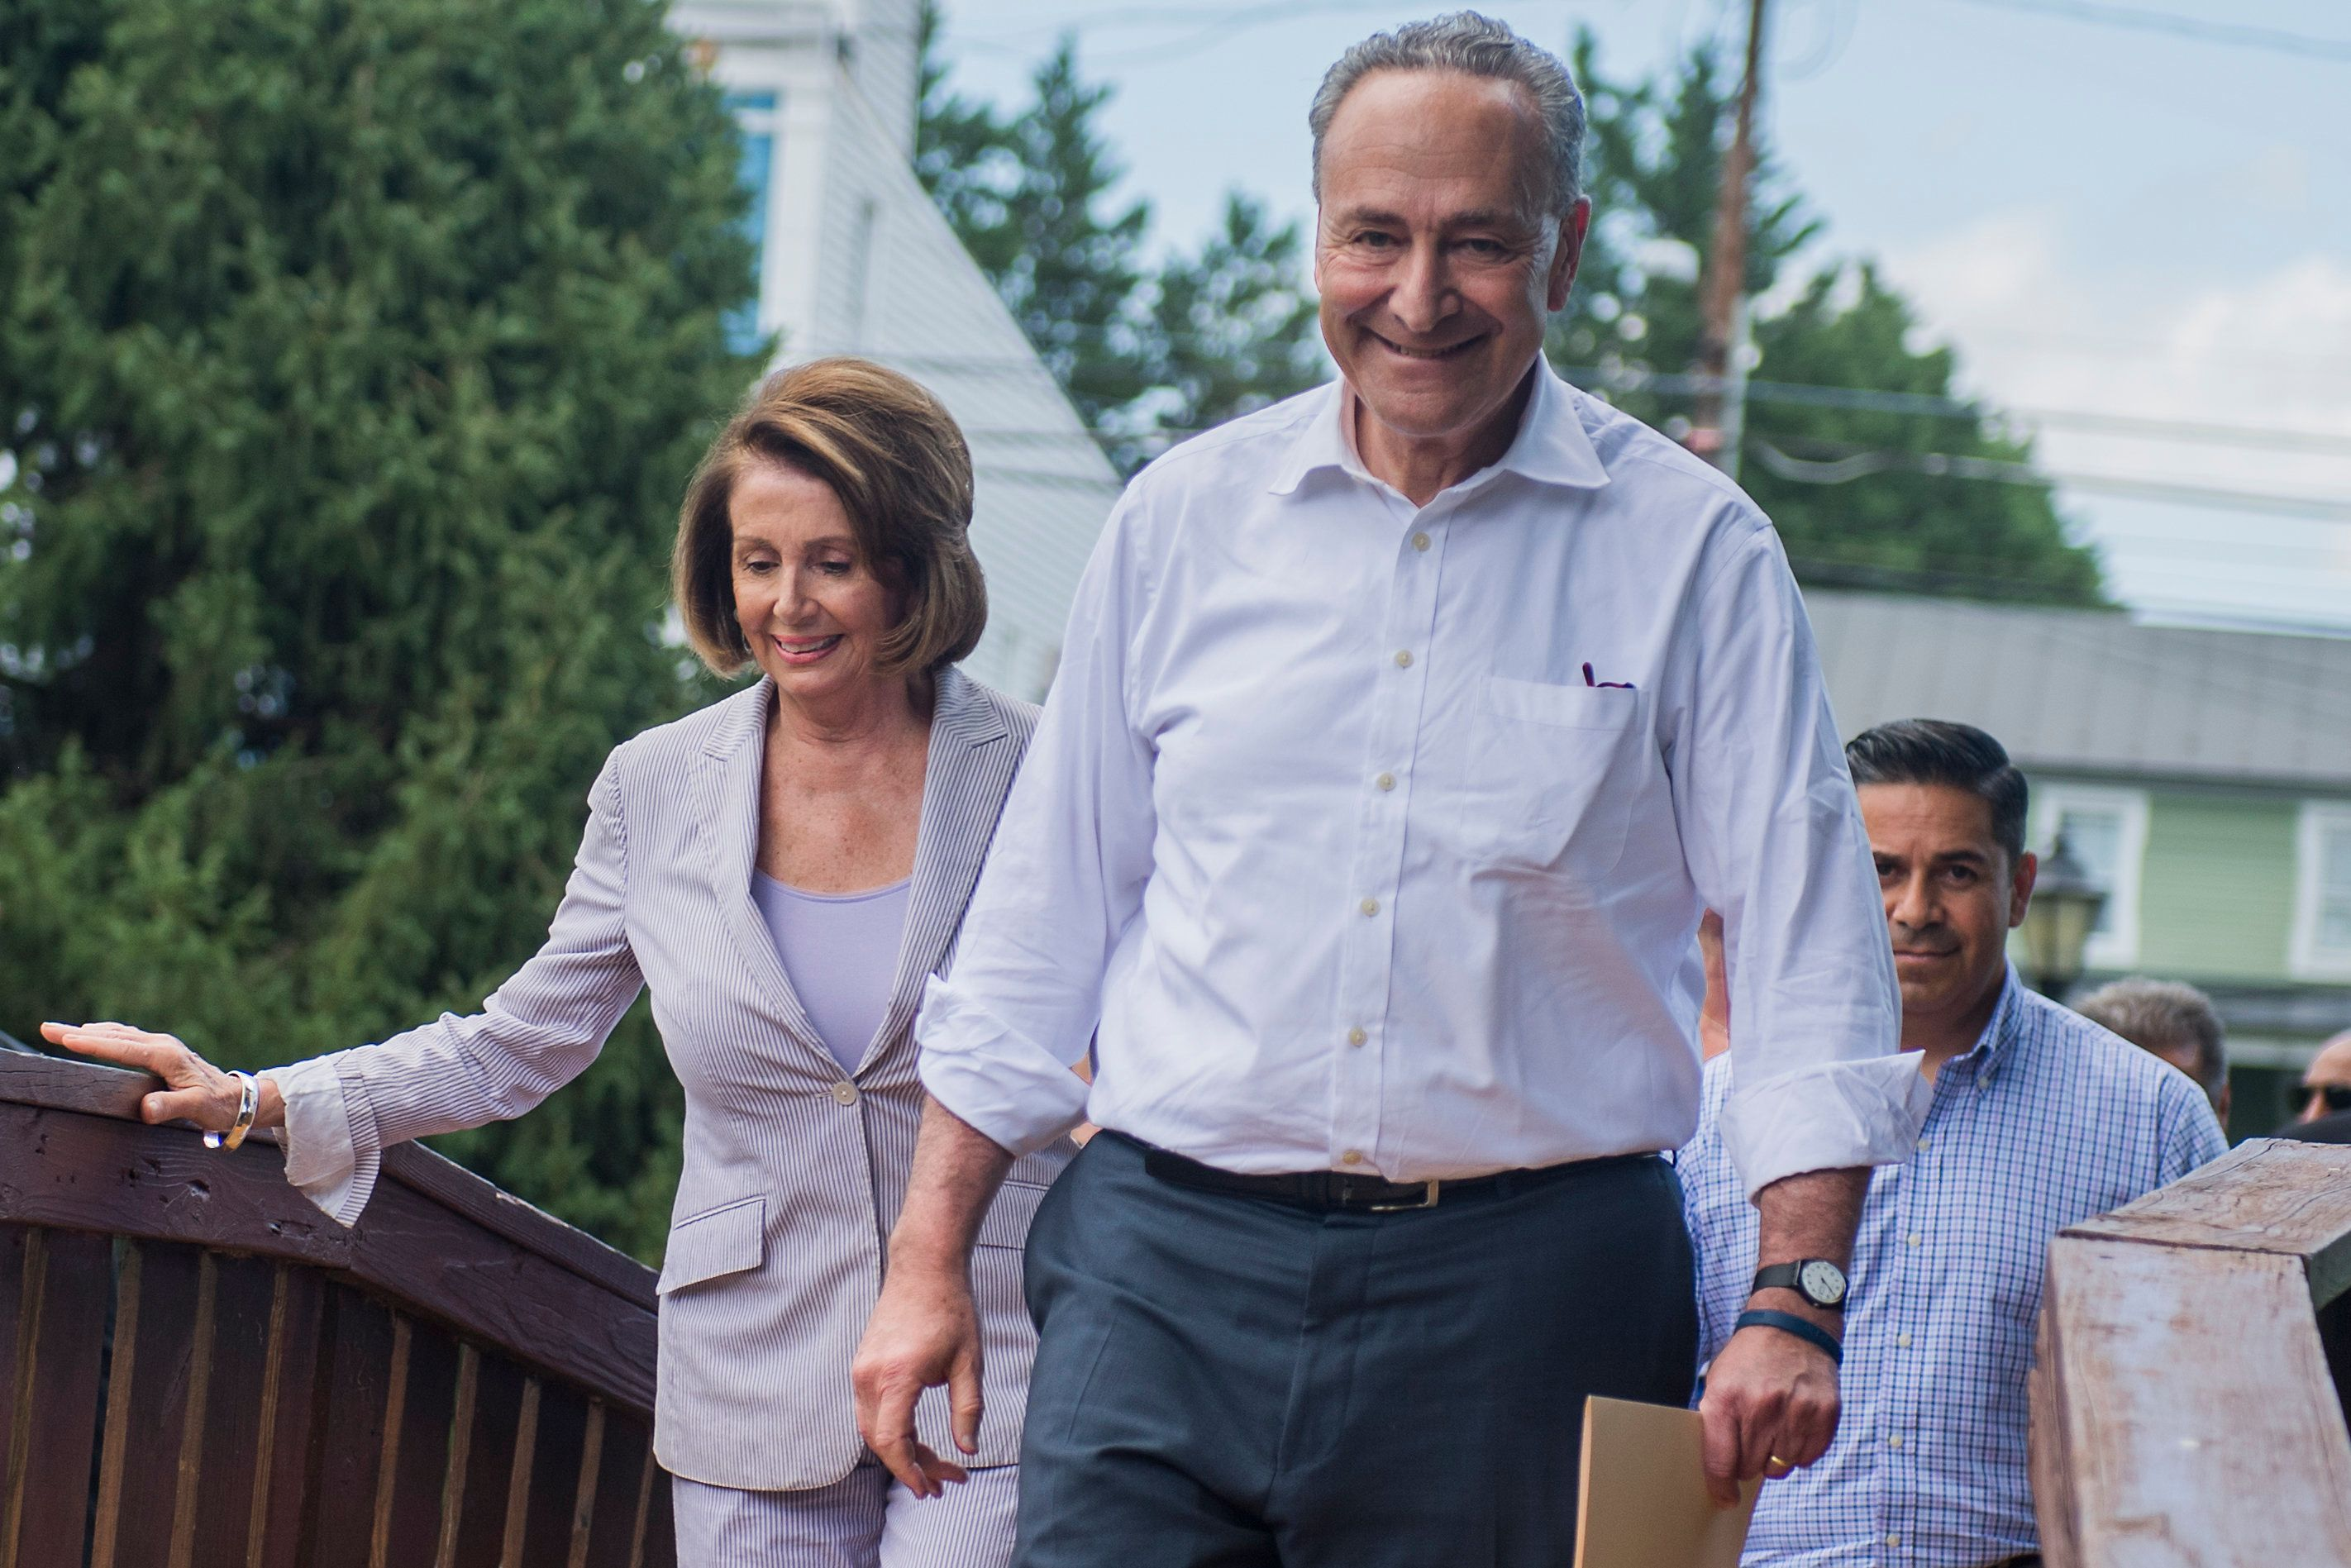 UNITED STATES - JULY 24: From left, House Minority Leader Nancy Pelosi, D-Calif., Senate Minority Leader Charles Schumer, D-N.Y., and and Rep. Ben Ray Lujan, D-N.M., arrive for a rally with House and Senate Democrats to announce 'A Better Deal' economic agenda in Berryville, Va., on July 24, 2017. The plan aims to increase wages and lower expenses for Americans. (Photo By Tom Williams/CQ Roll Call)